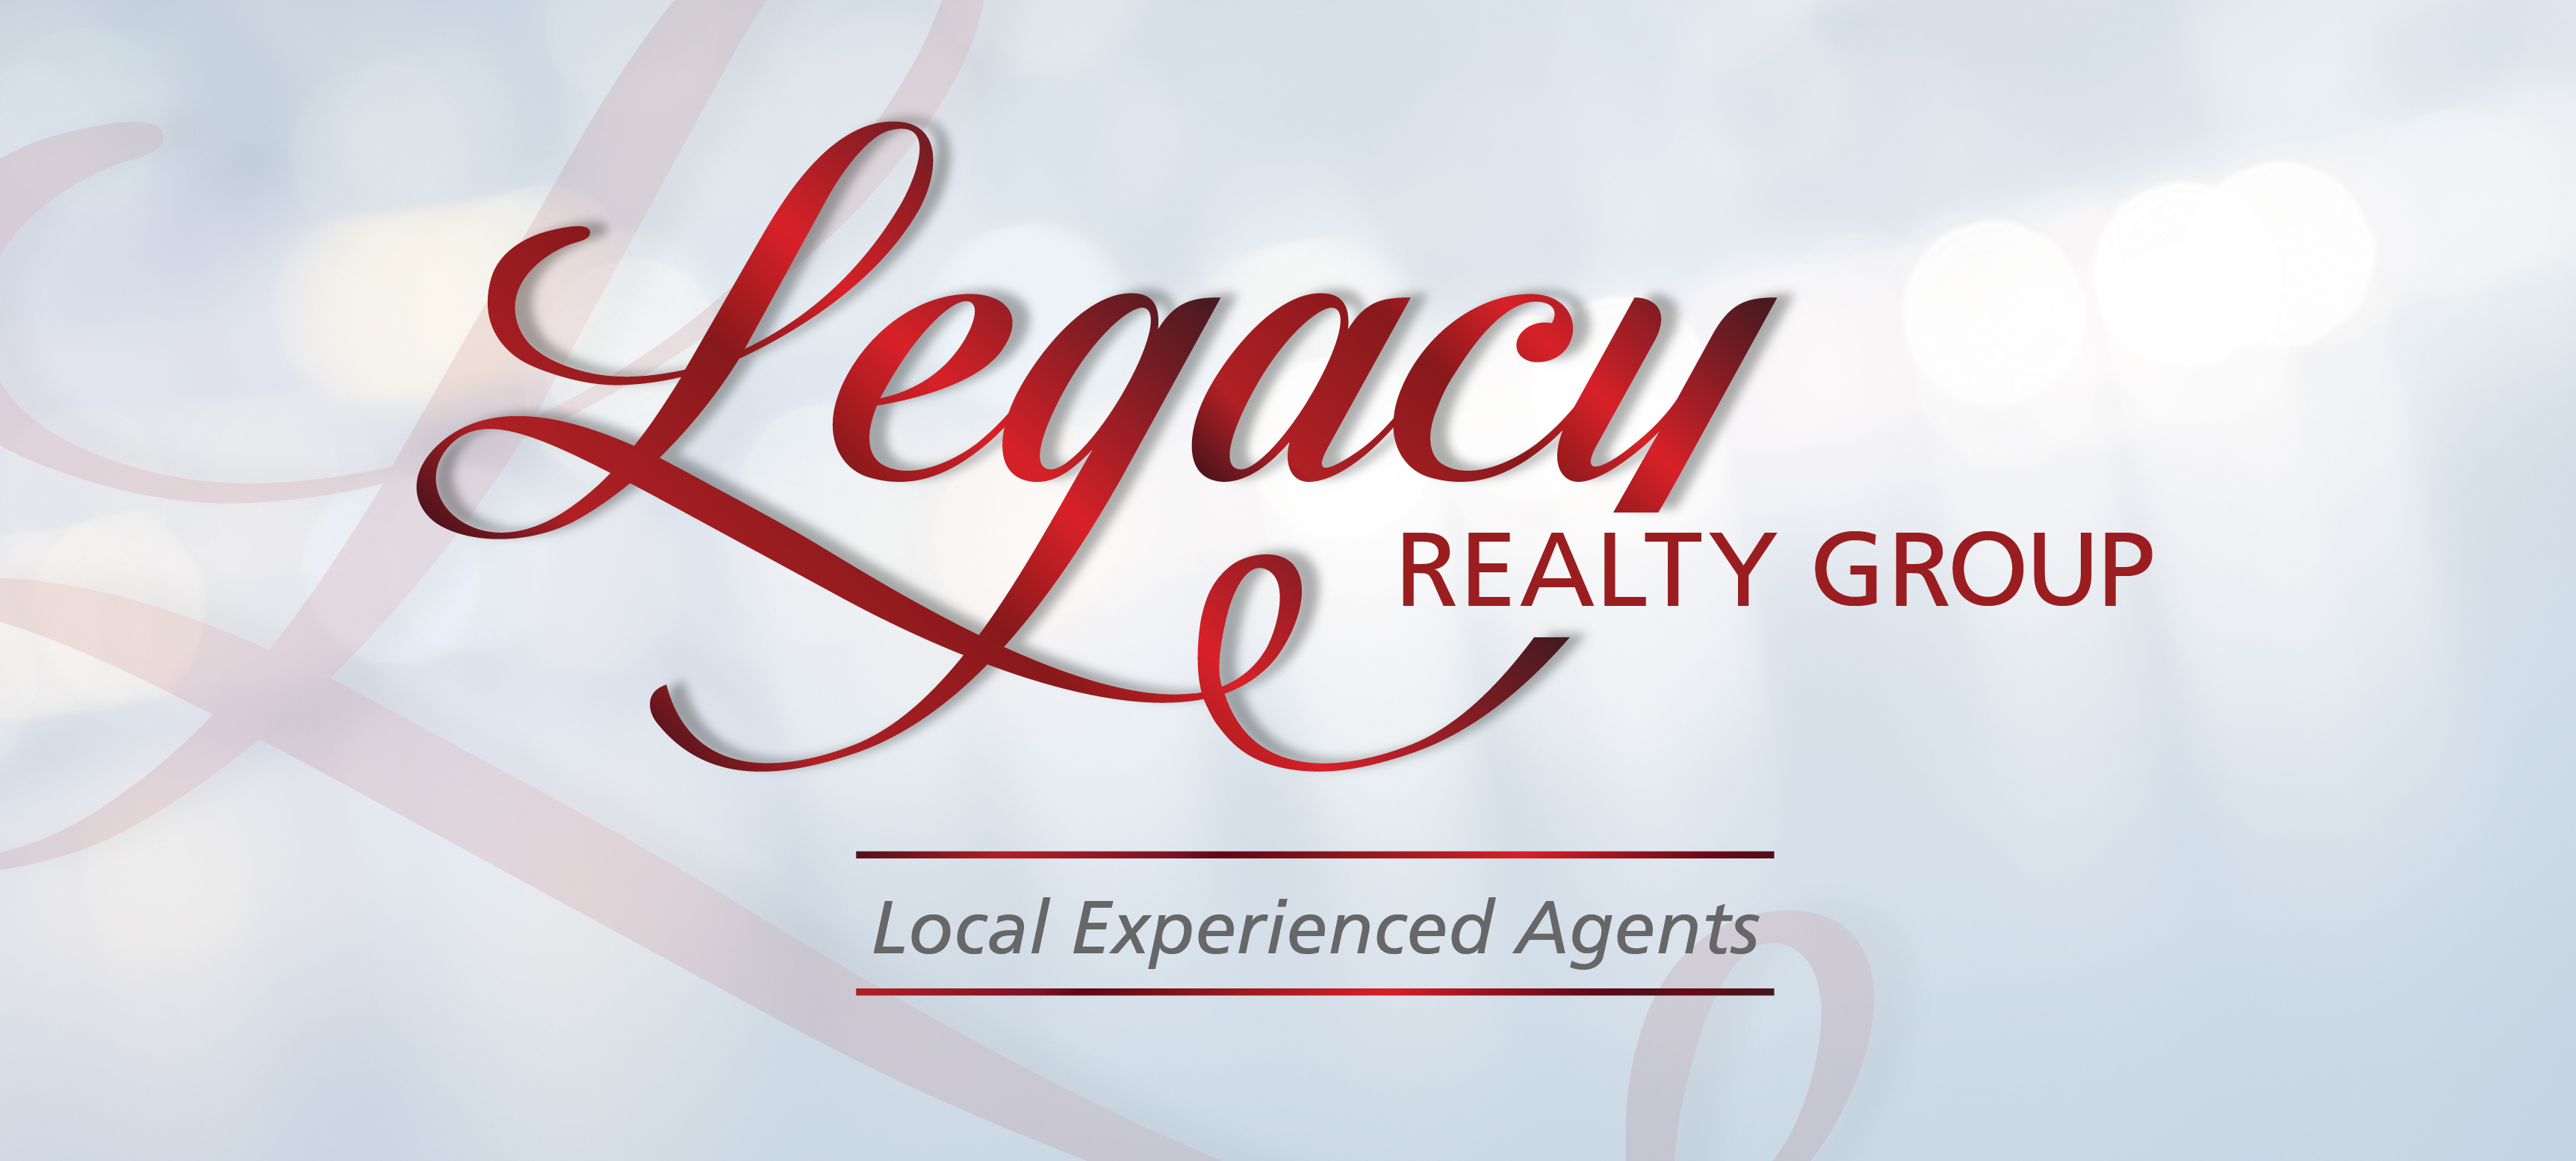 Legacy Realty Group - Leslie Majors Team reviews | Real Estate Services at 130 Chieftain Dr - Waxahachie TX